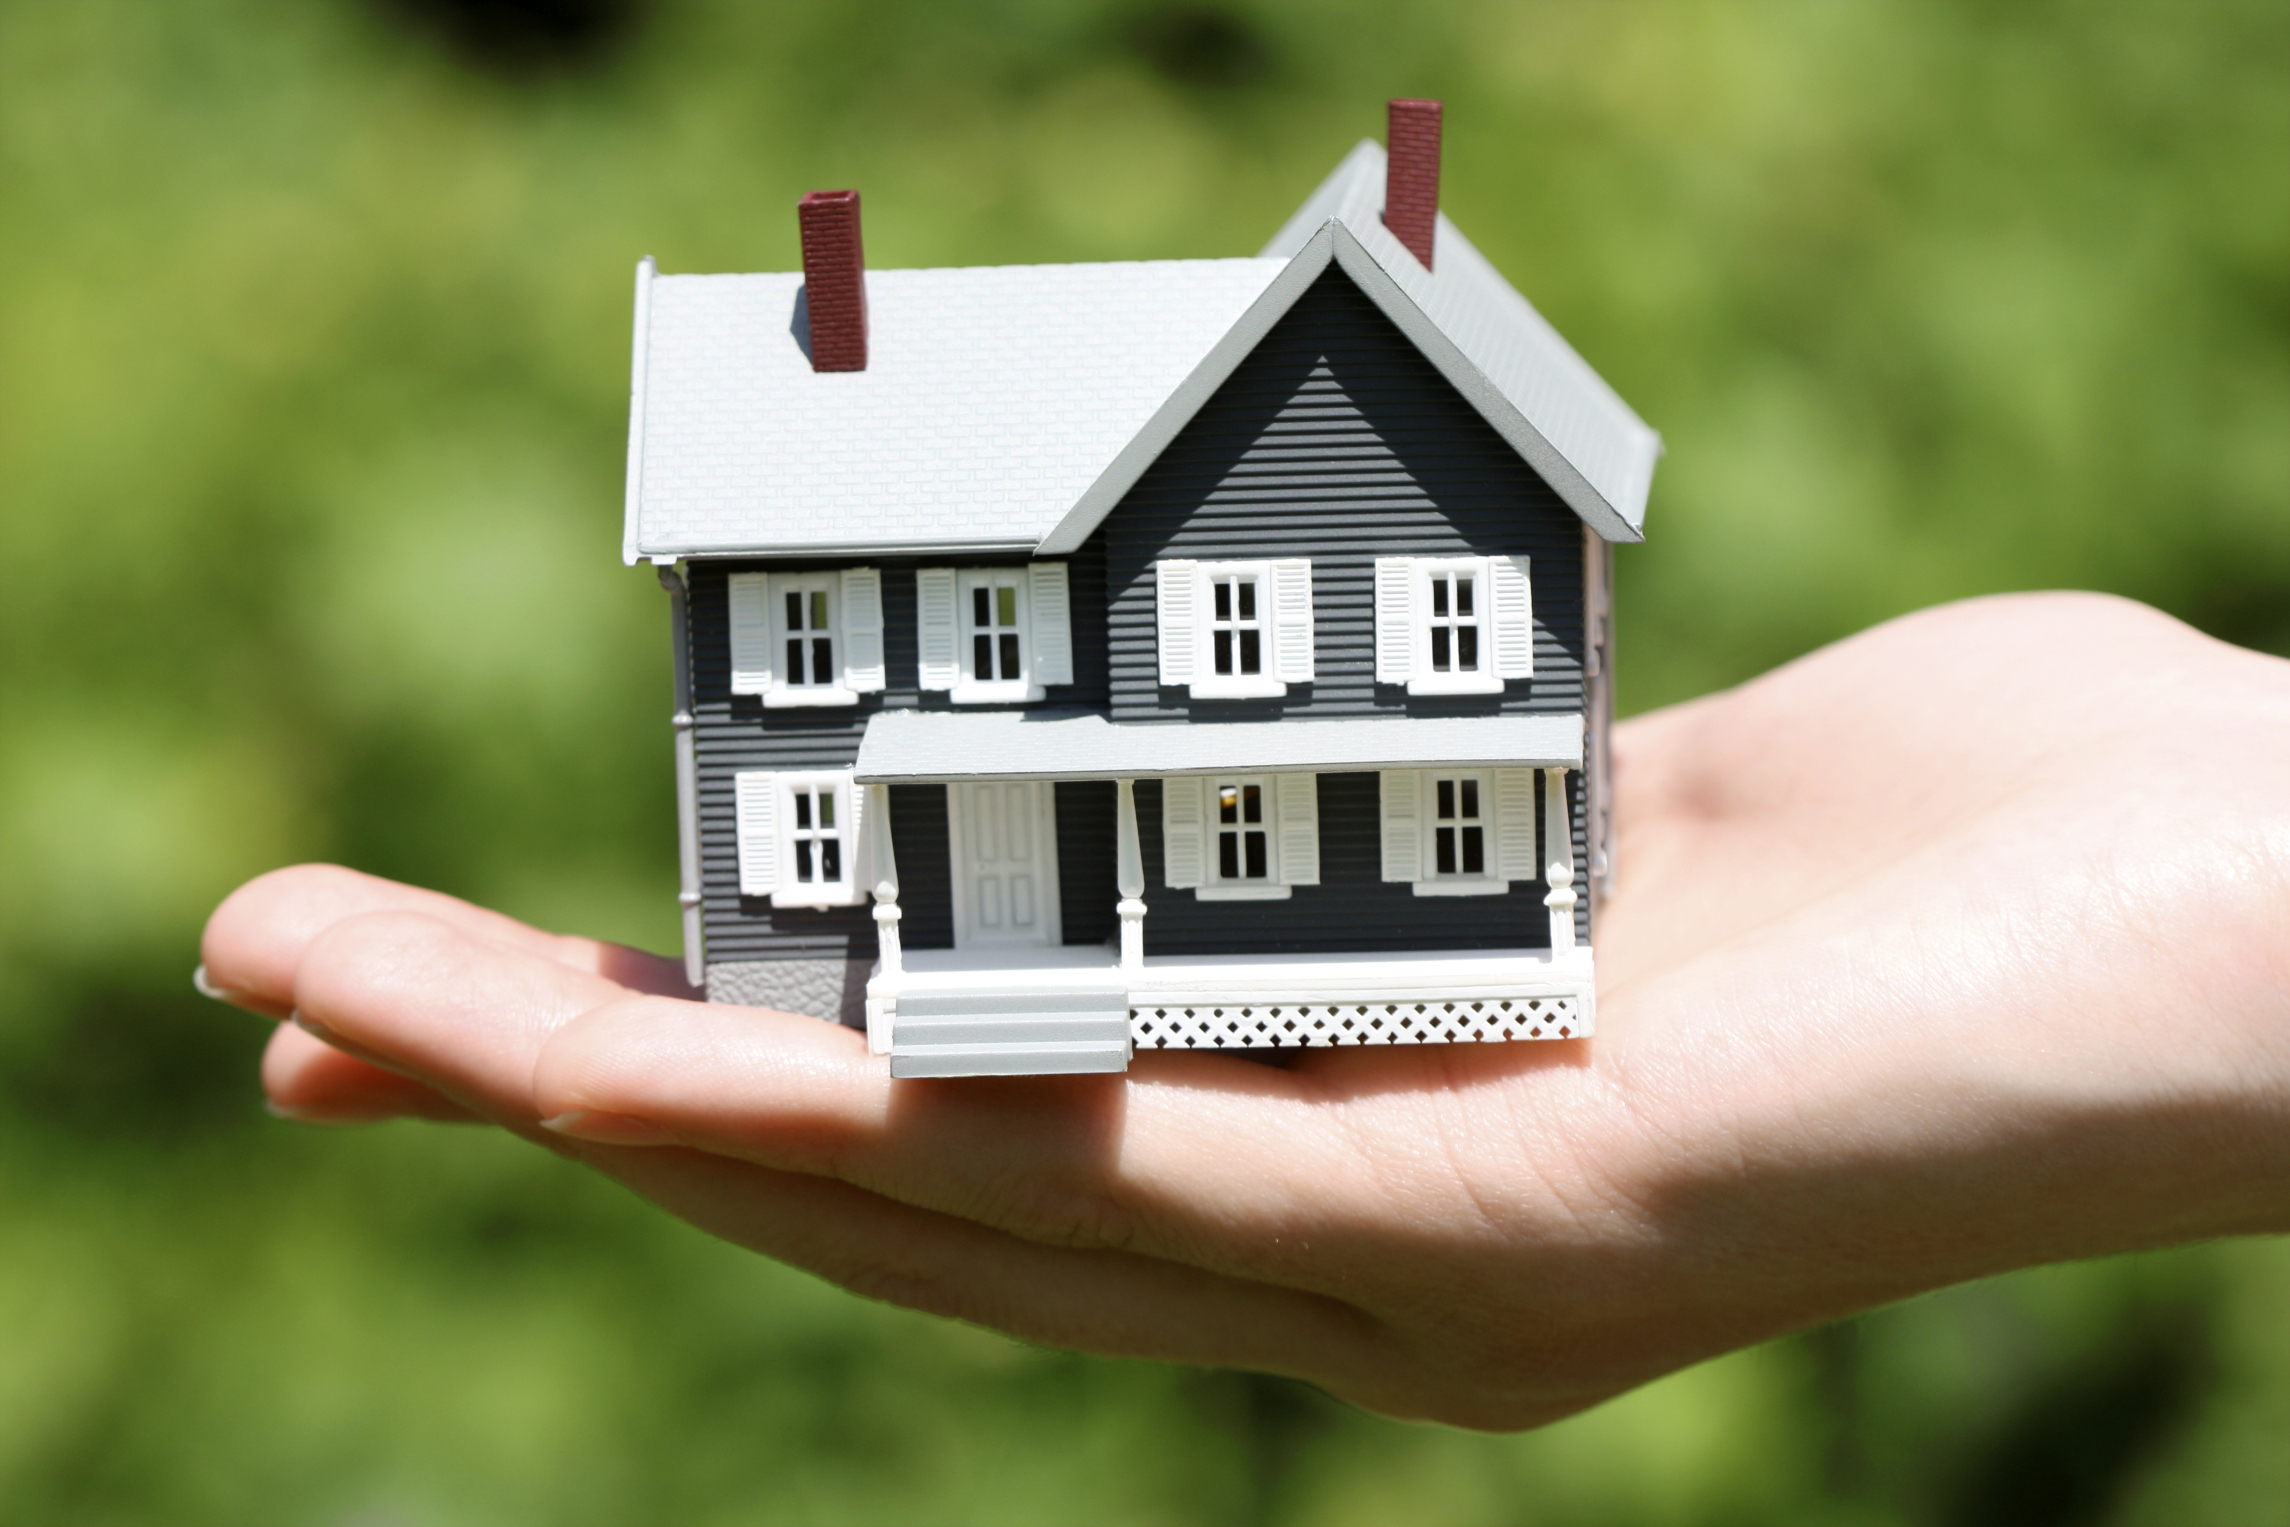 Be taught The Suggestions To Promote Your Home On-line With Excessive Revenue